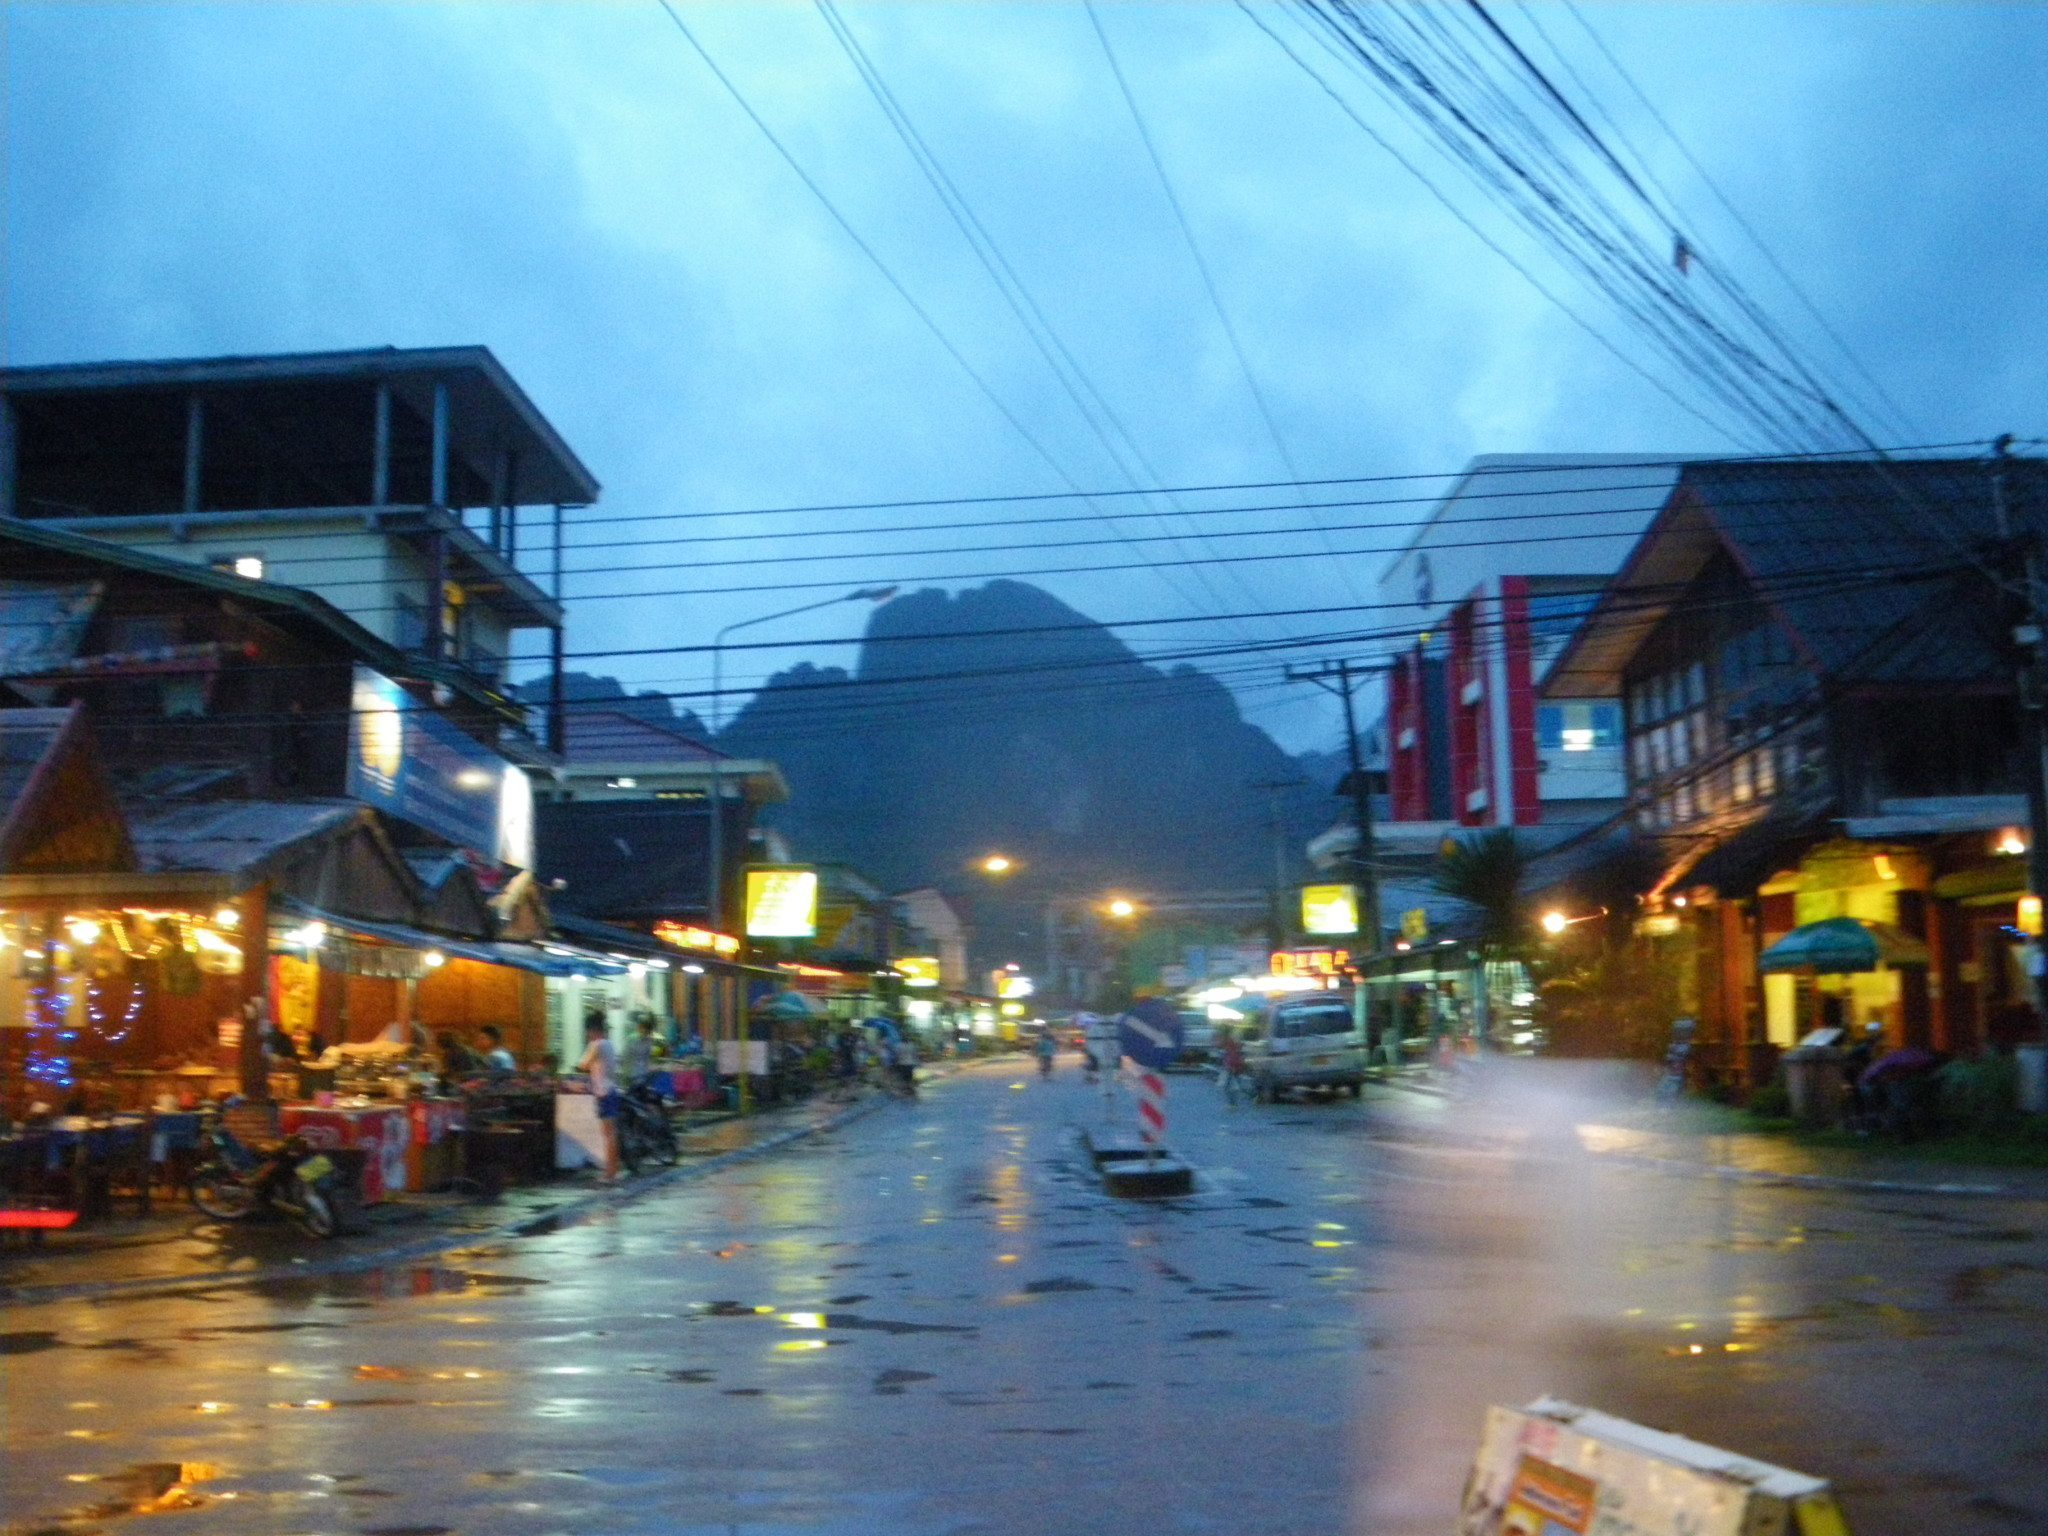 Backpacking in laos staying at vang vieng guesthouse for Domon river guesthouse vang vieng